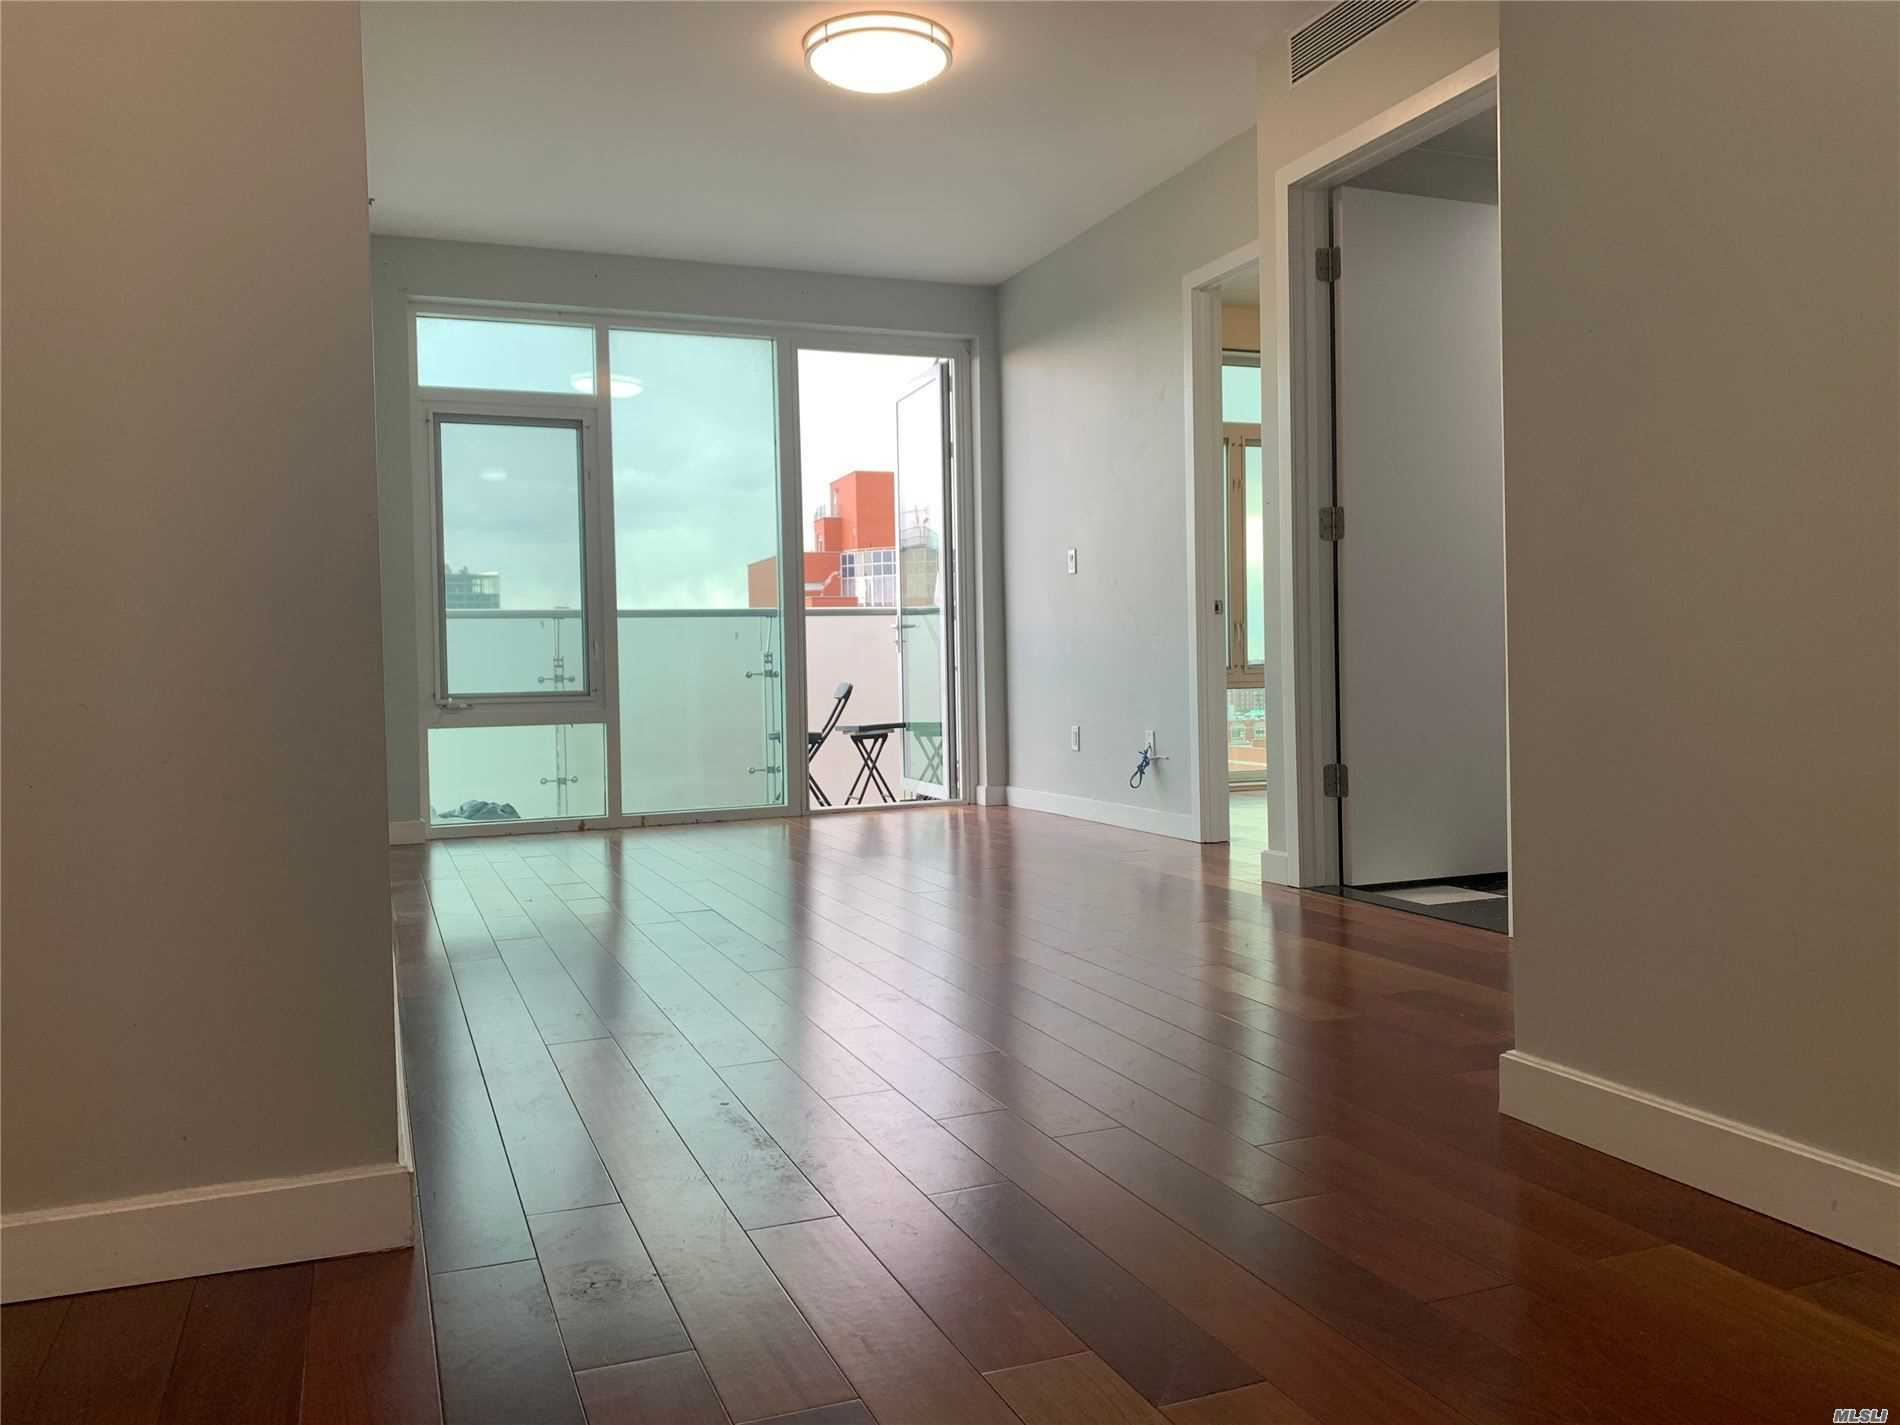 142-38 37th Avenue #12E, Flushing, NY 11354 - MLS#: 3214672